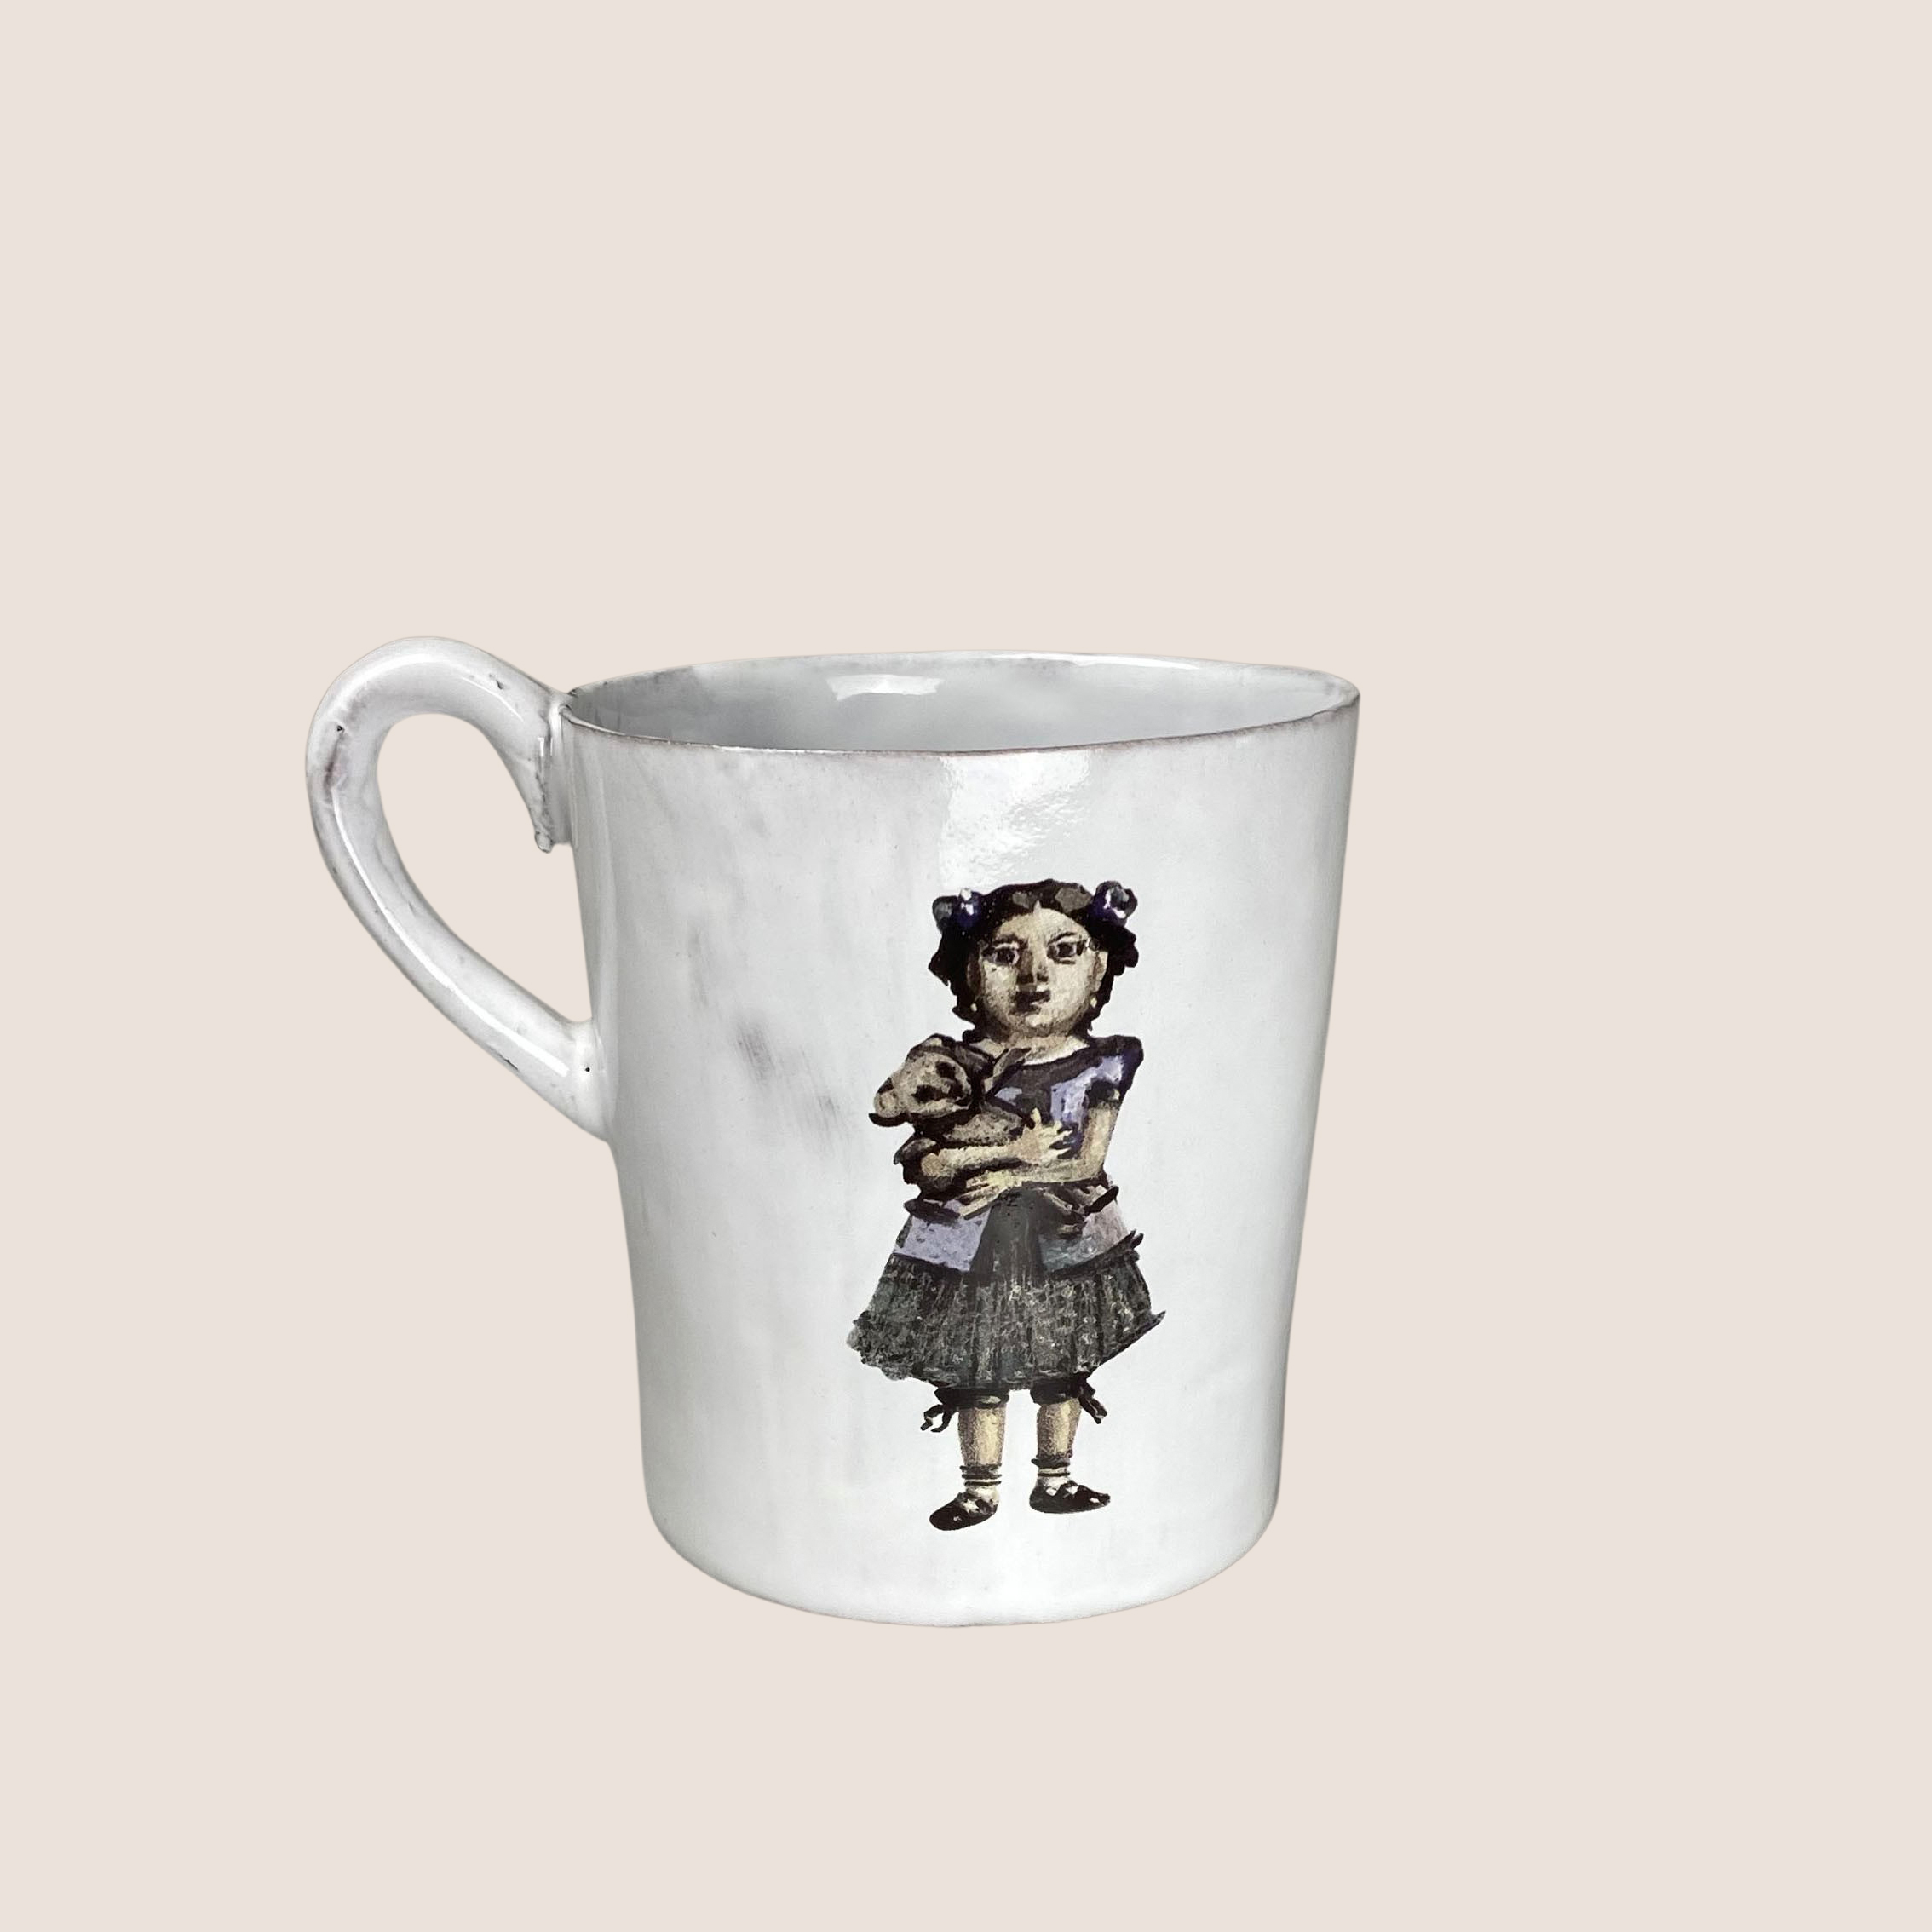 Mademoiselle Cup